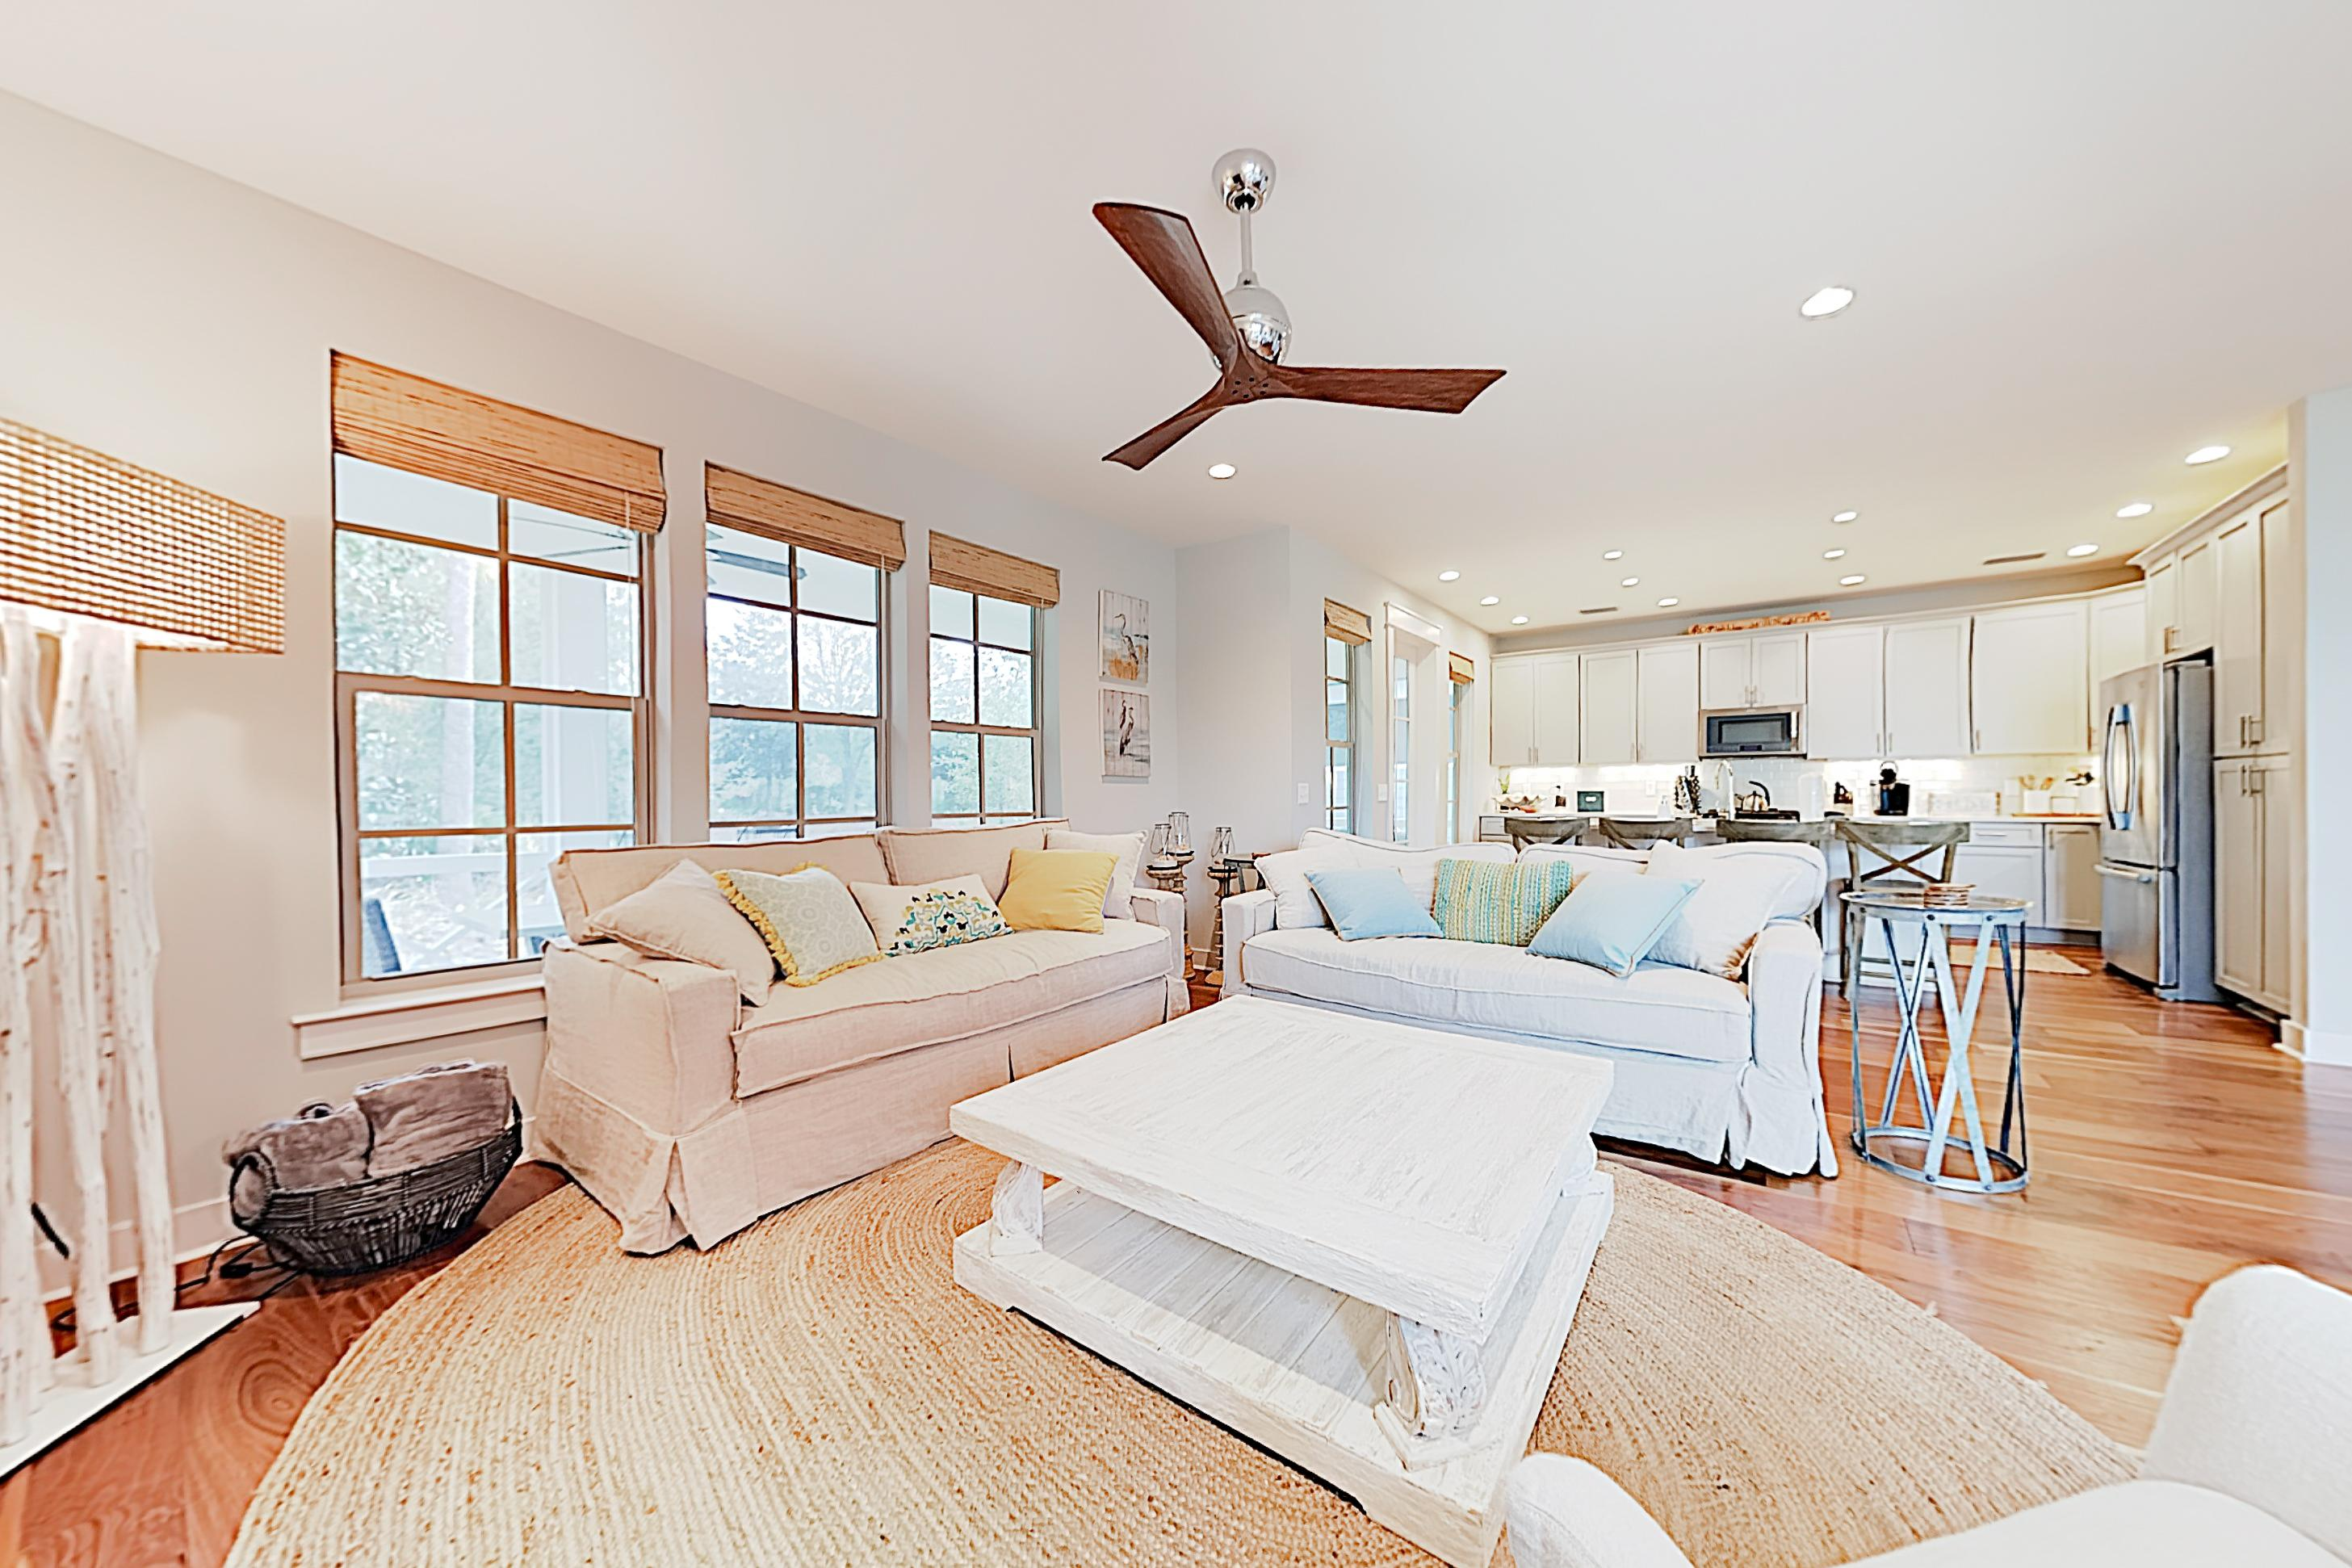 An open concept with hardwood floors creates a bright, airy space.